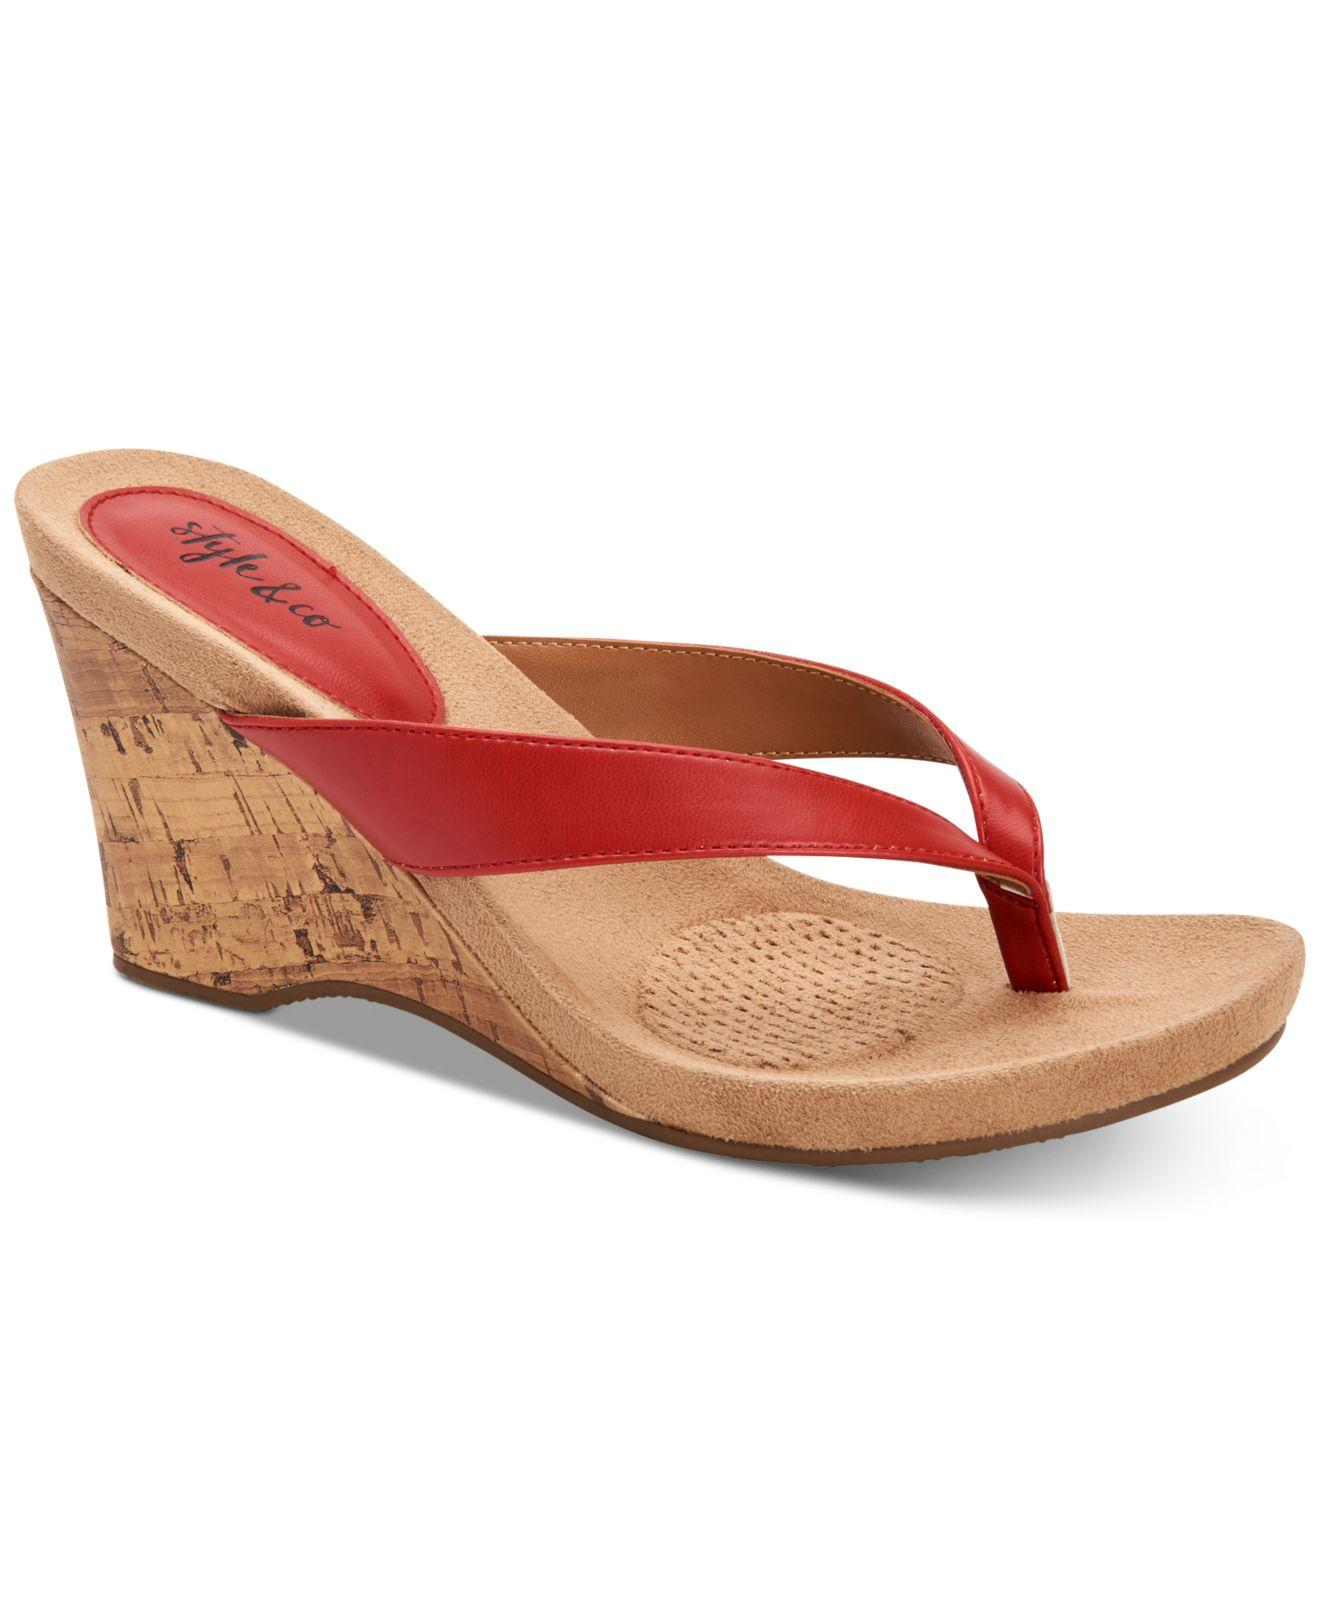 af4e78d020c7e Style   Co. Women s Red Chicklet Wedge Thong Sandals ...